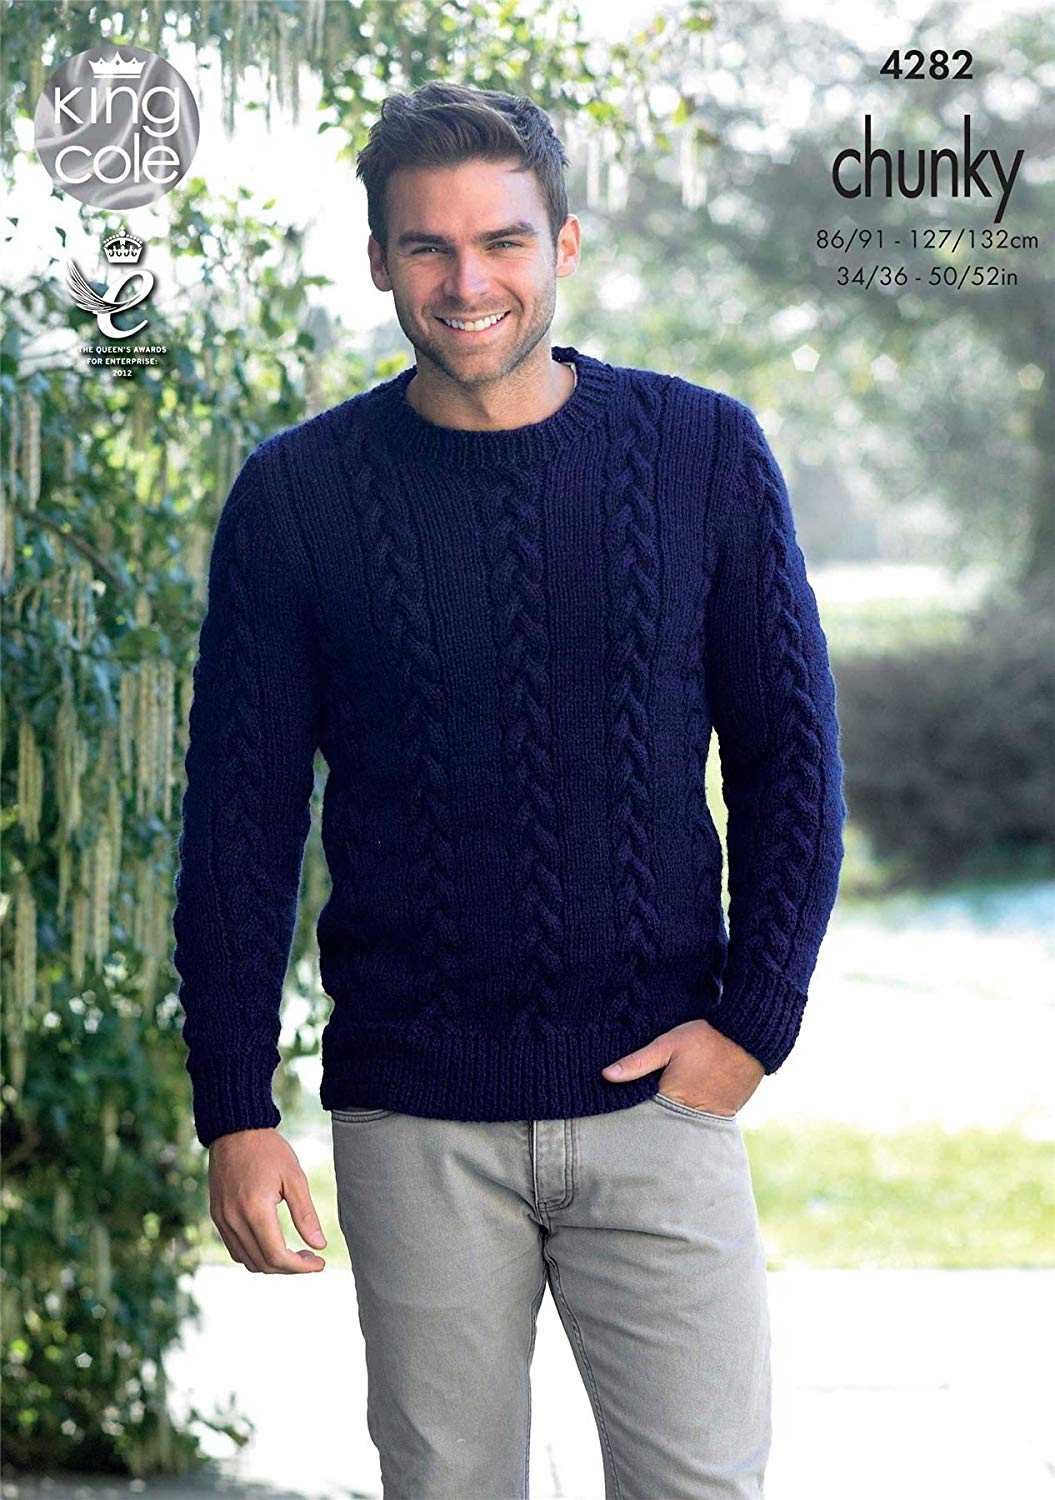 32e6db823 Get Quotations · King Cole Magnum Chunky Knitting Pattern Mens Cable Knit  Sweater Jumper   Slipover (4282)